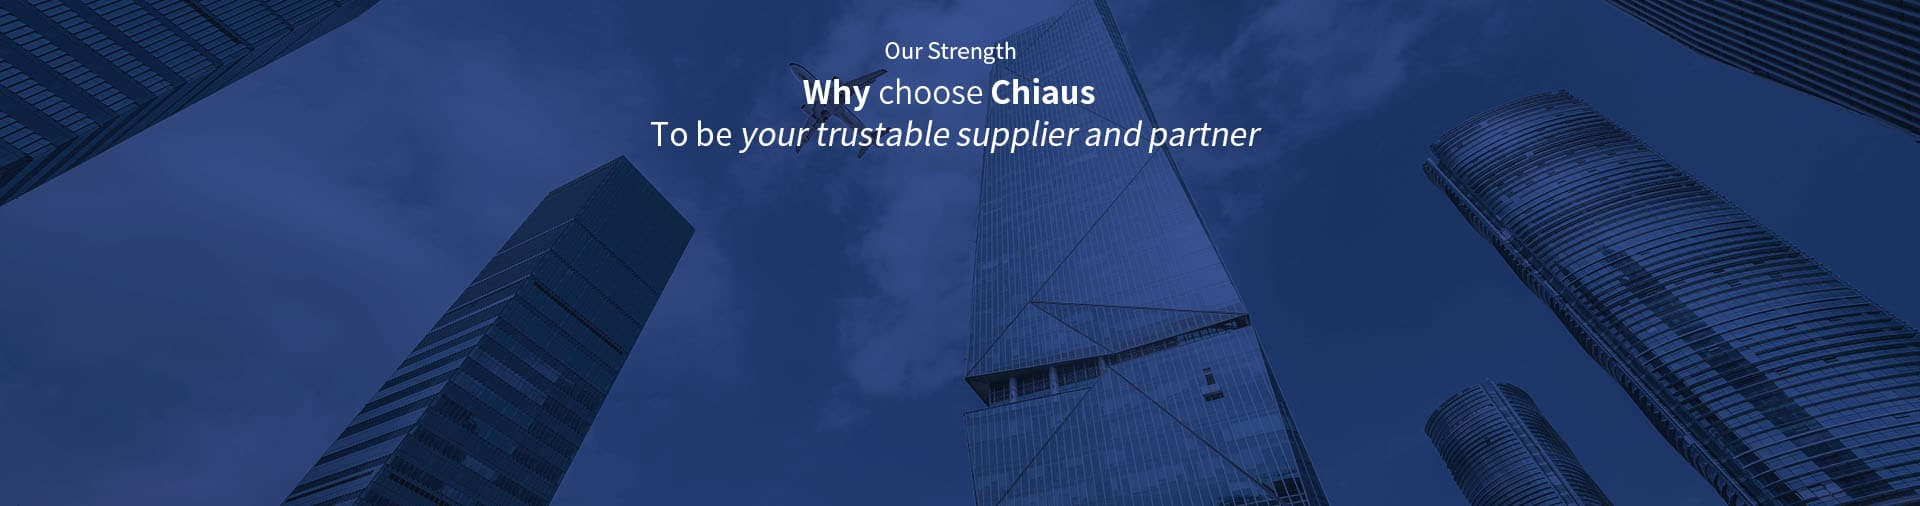 why choose chiaus